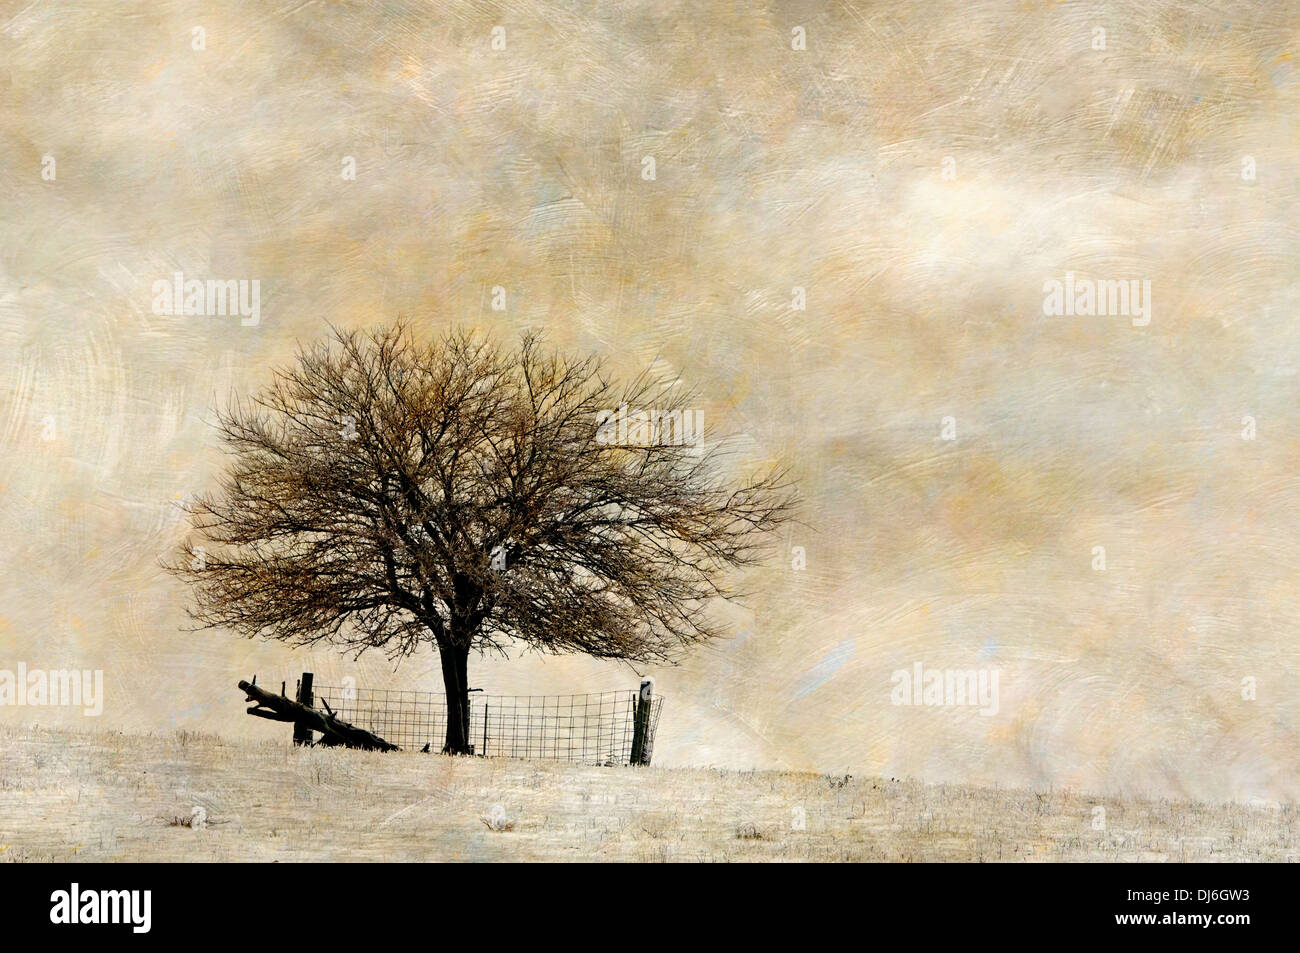 Textured Tree and Fence in Stark Winter Landscape in Washington County, Indiana - Stock Image